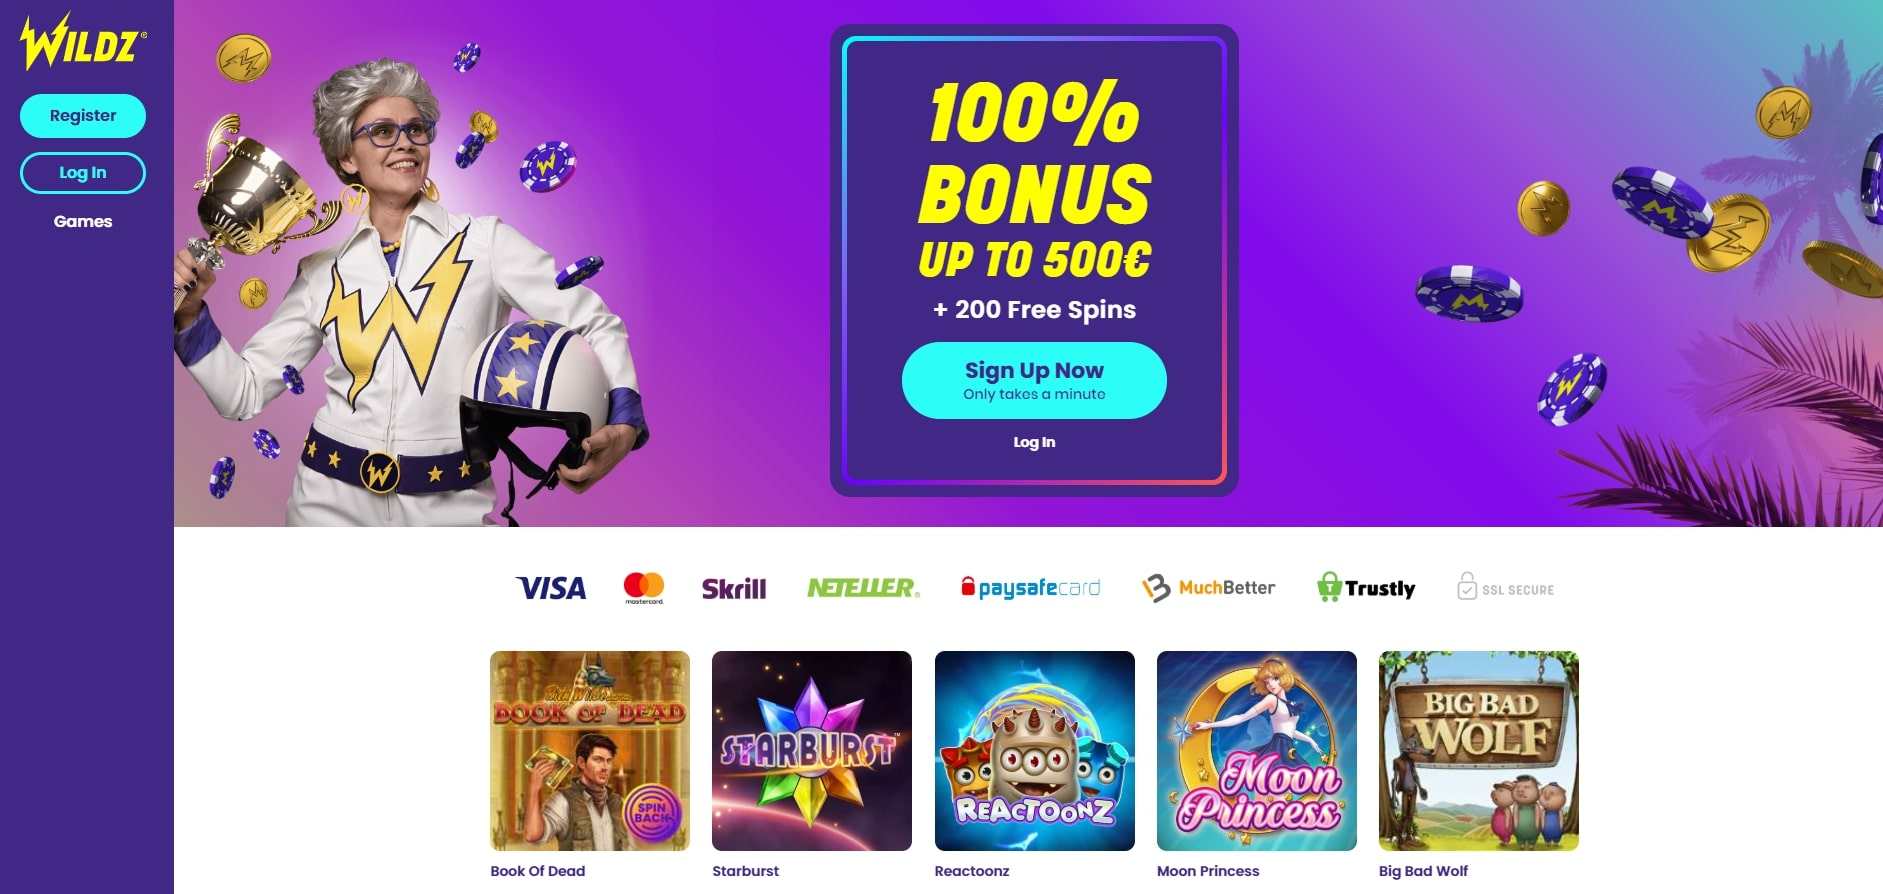 Wildz Online Casino Welcome Bonus